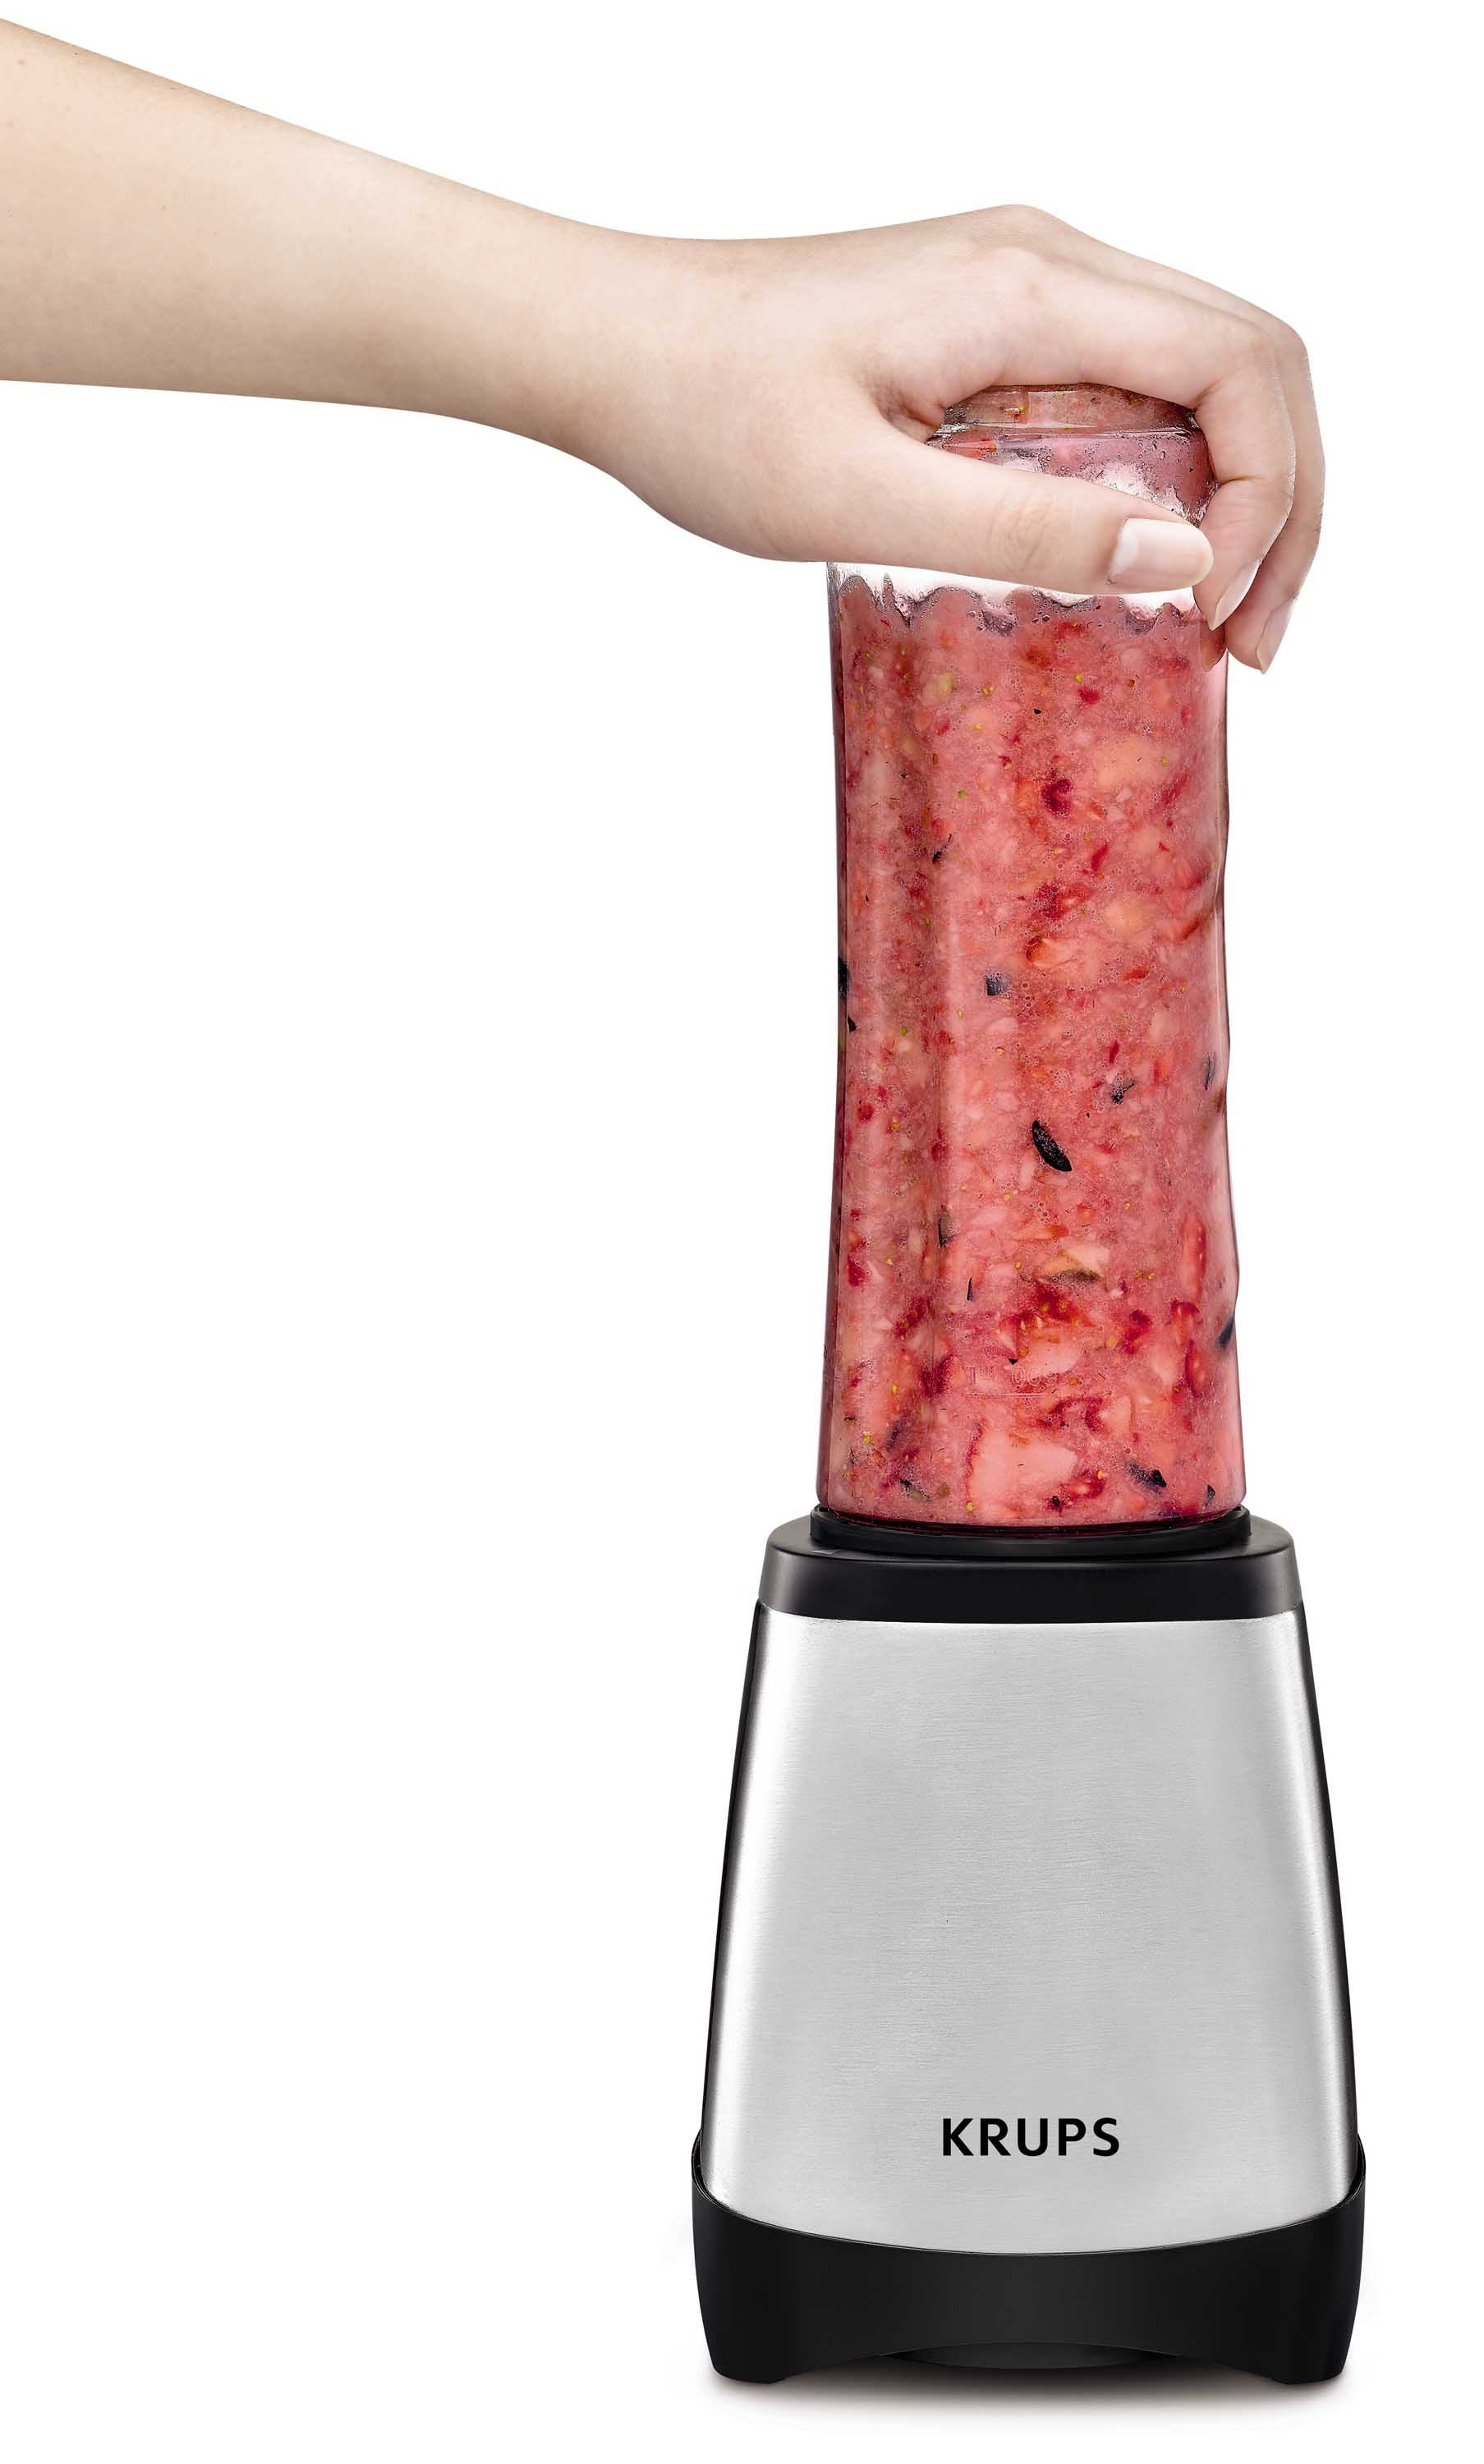 Krups Standmixer Smoothie to go Perfect Mix 2000